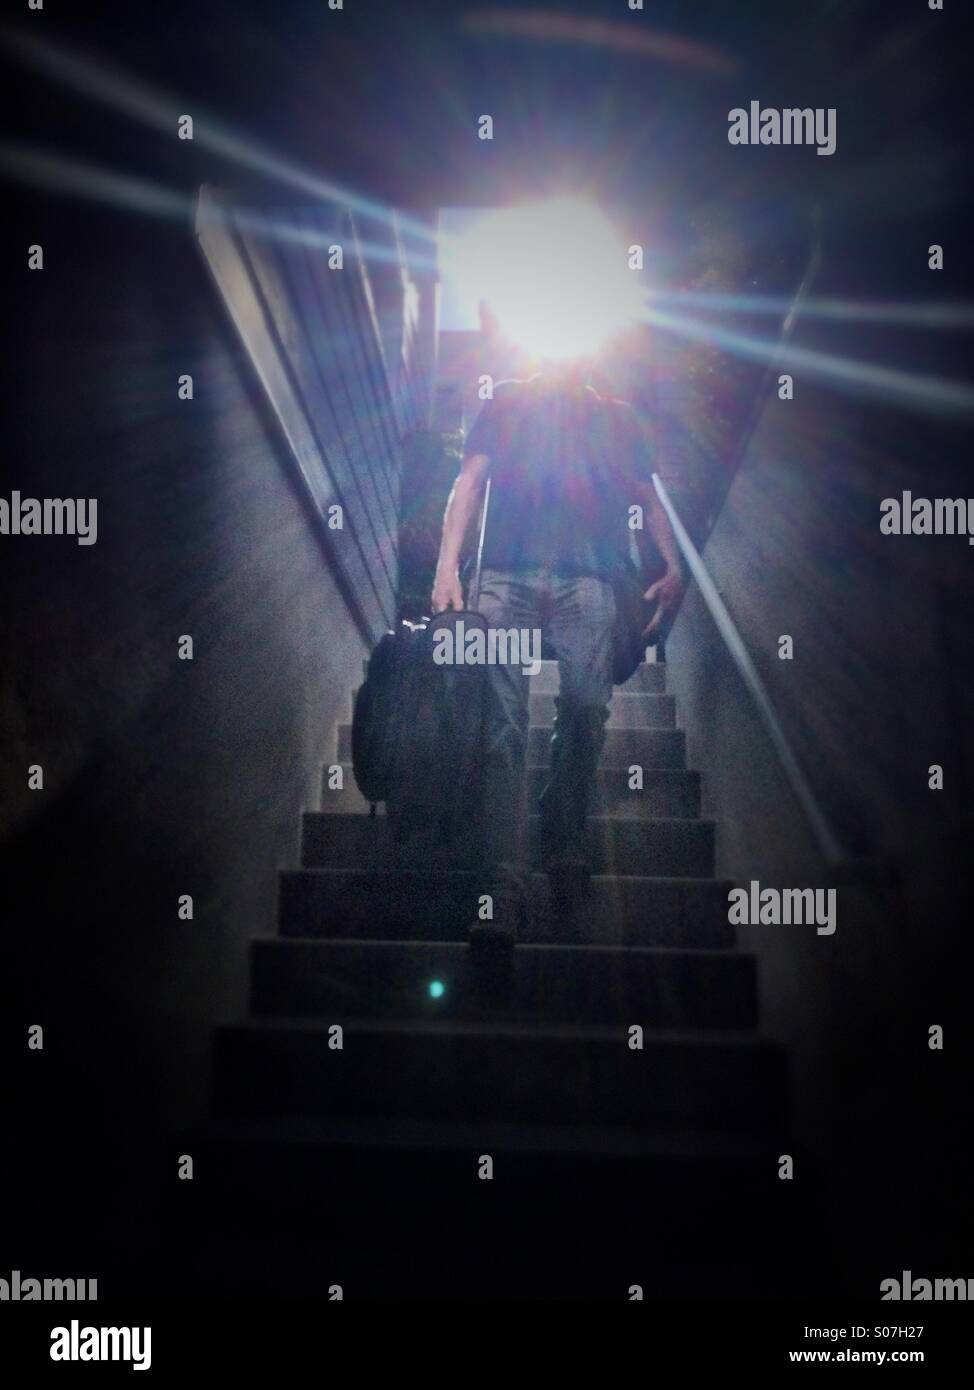 Man with suitcase walking down stairs - Stock Image